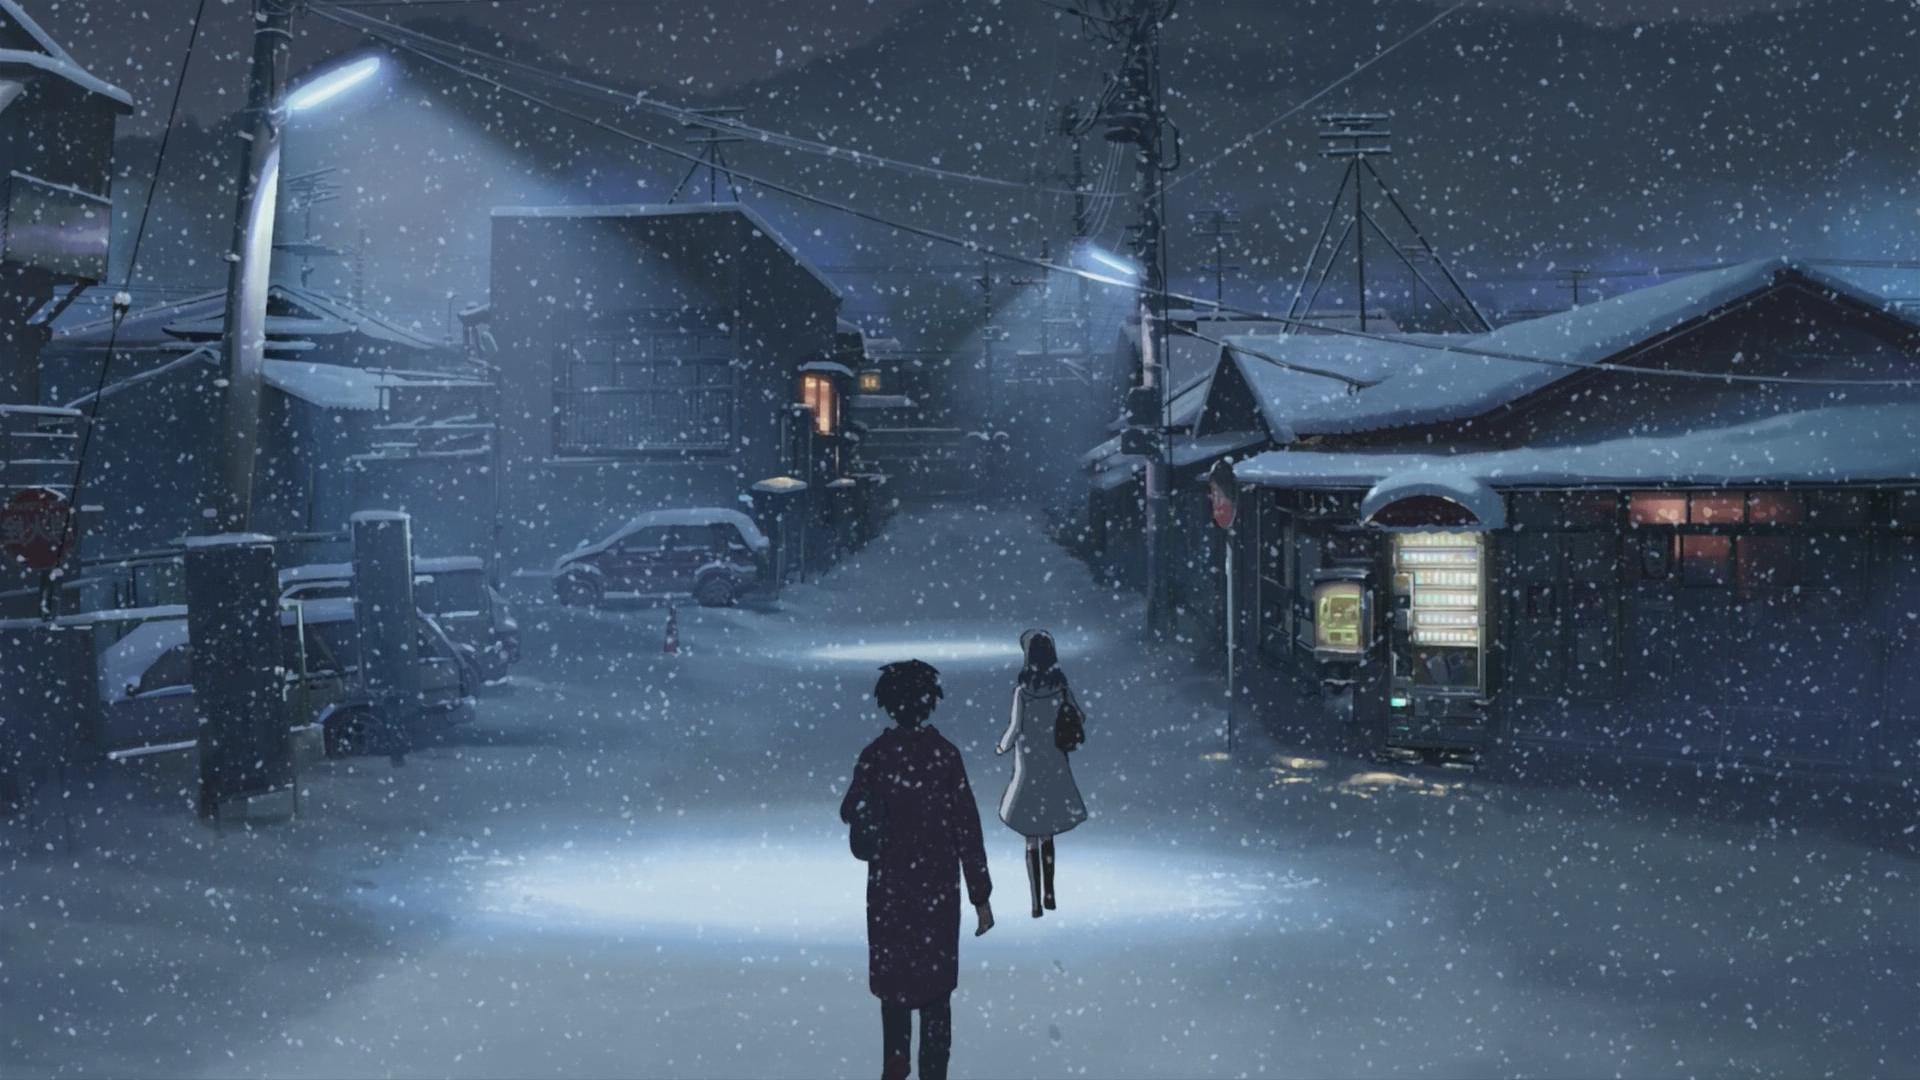 Anime Winter HD Wallpaper Background Image 1920x1080 ID 1920x1080